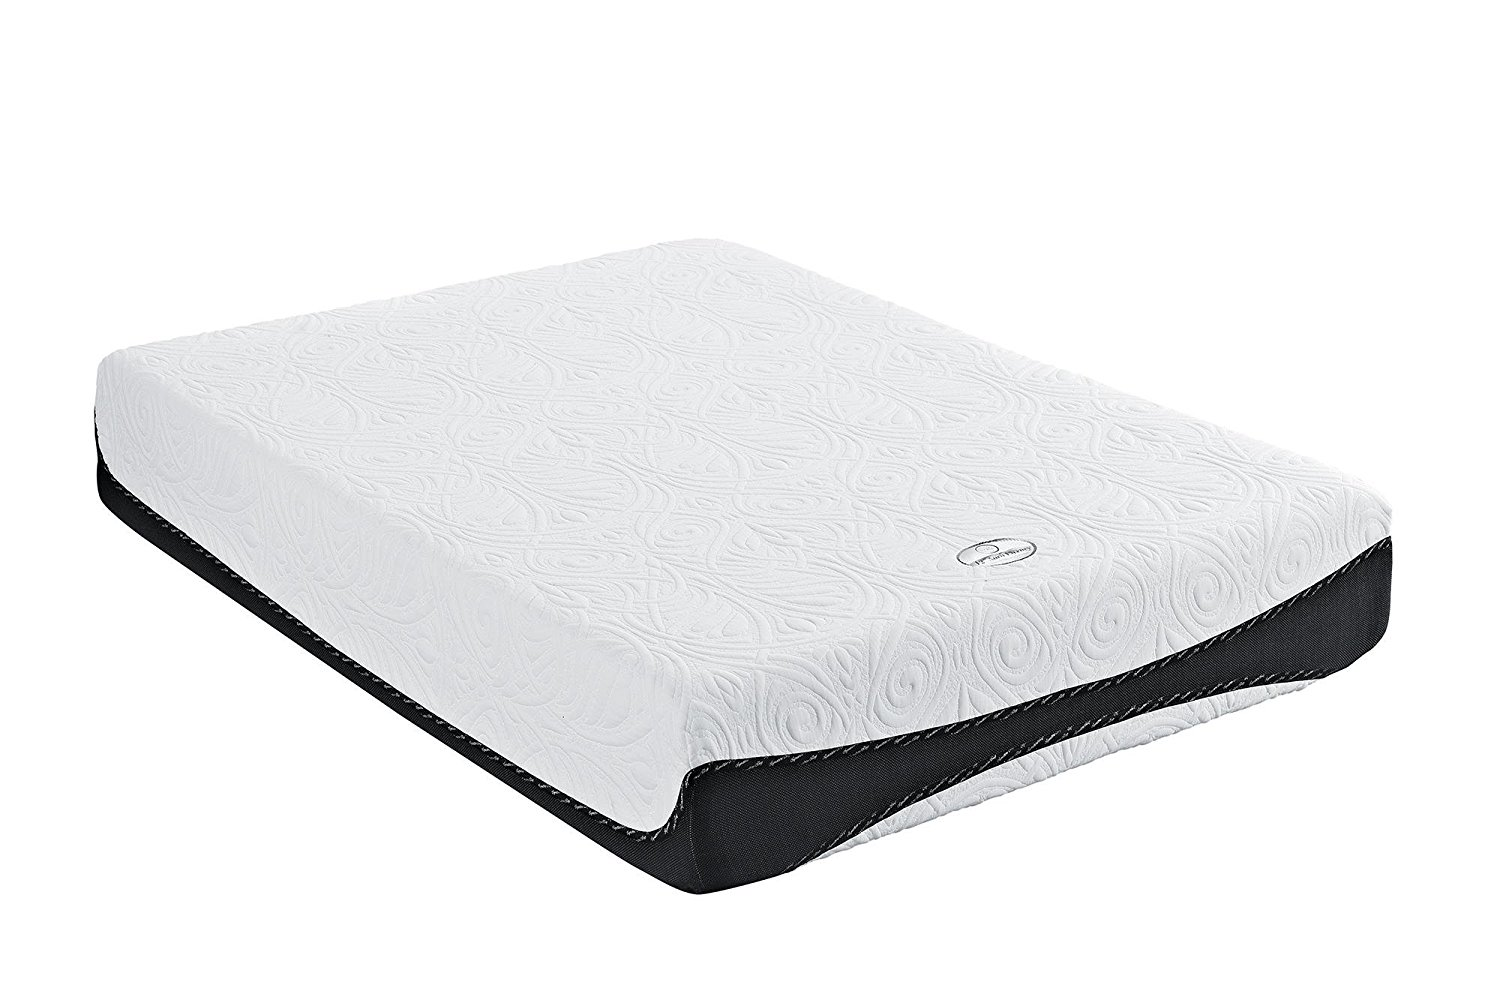 Signature Sleep 12 Inch Gel Memory Foam Mattress, Aura Luxury Firm Queen Mattress